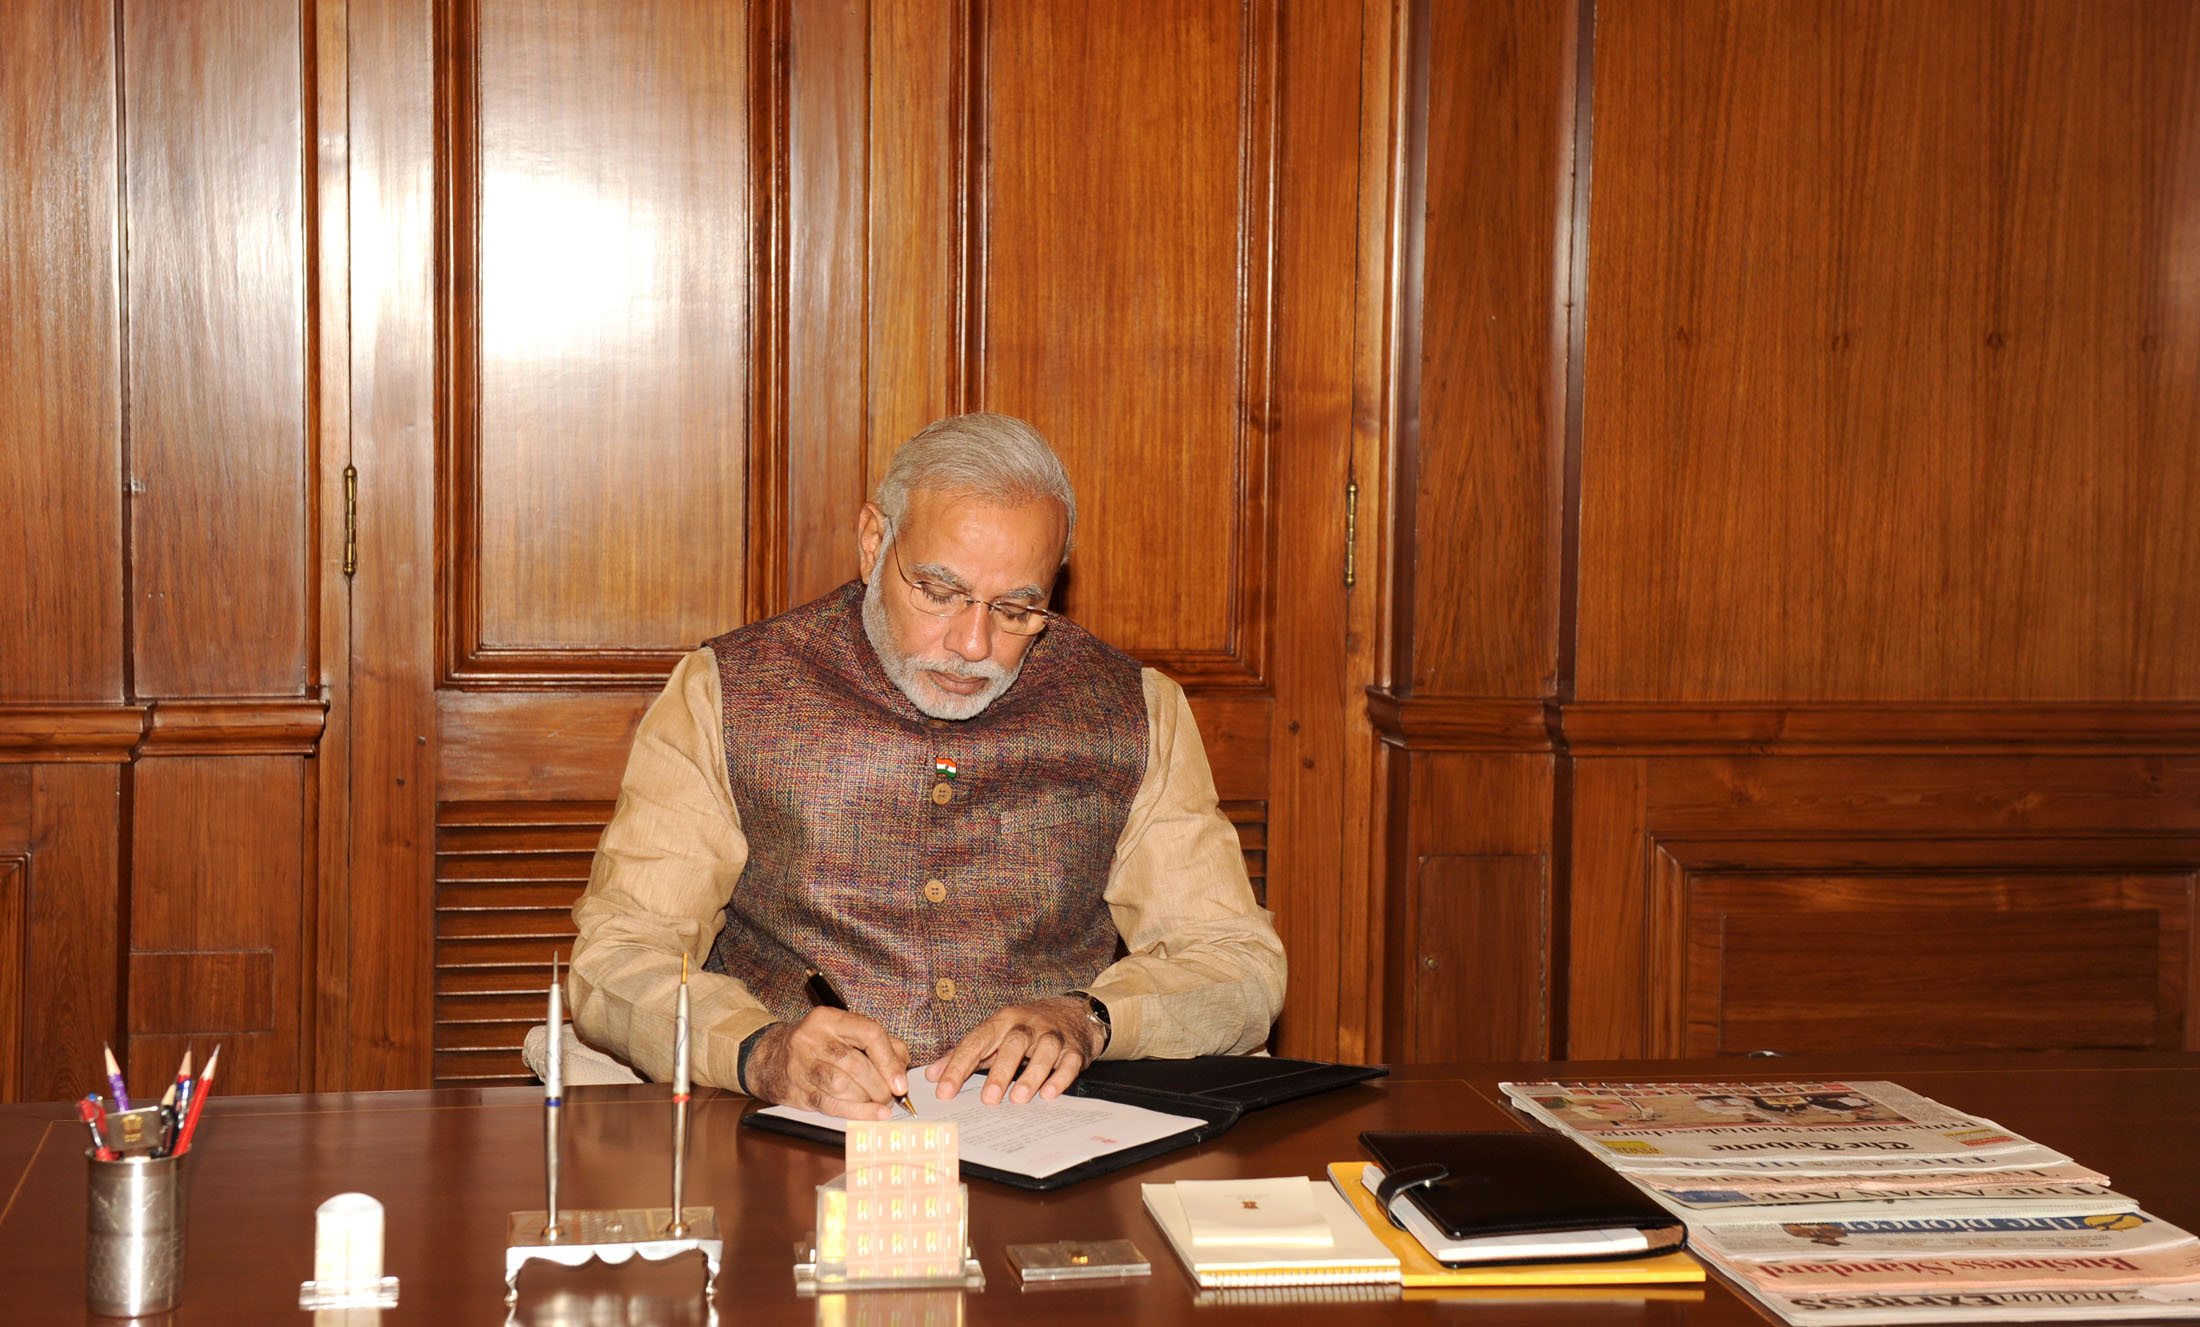 We need to take issue of terrorism seriously: Modi